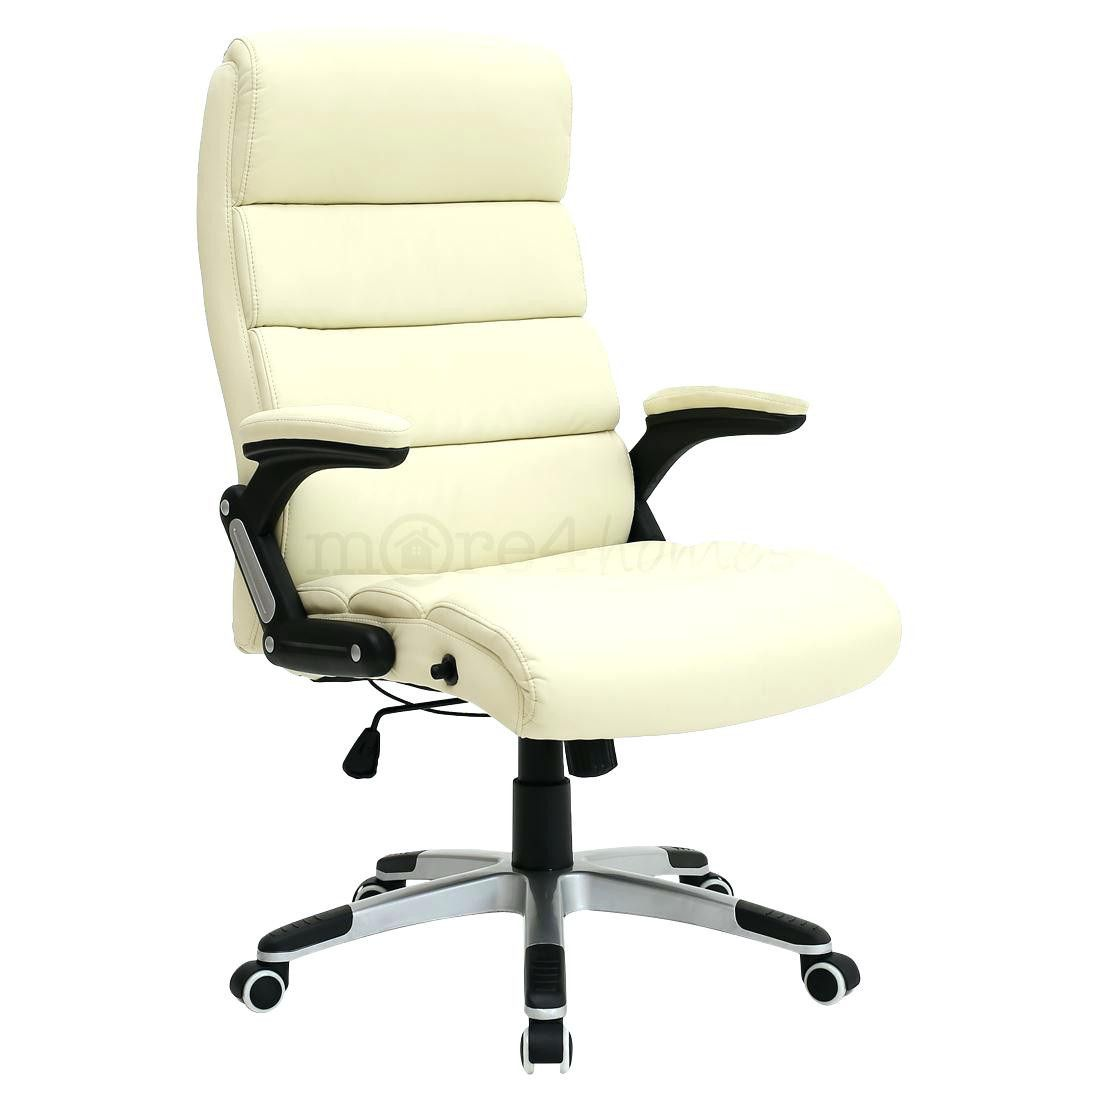 Cream Swivel Office Chair Ashley Furniture Home Check More At Http